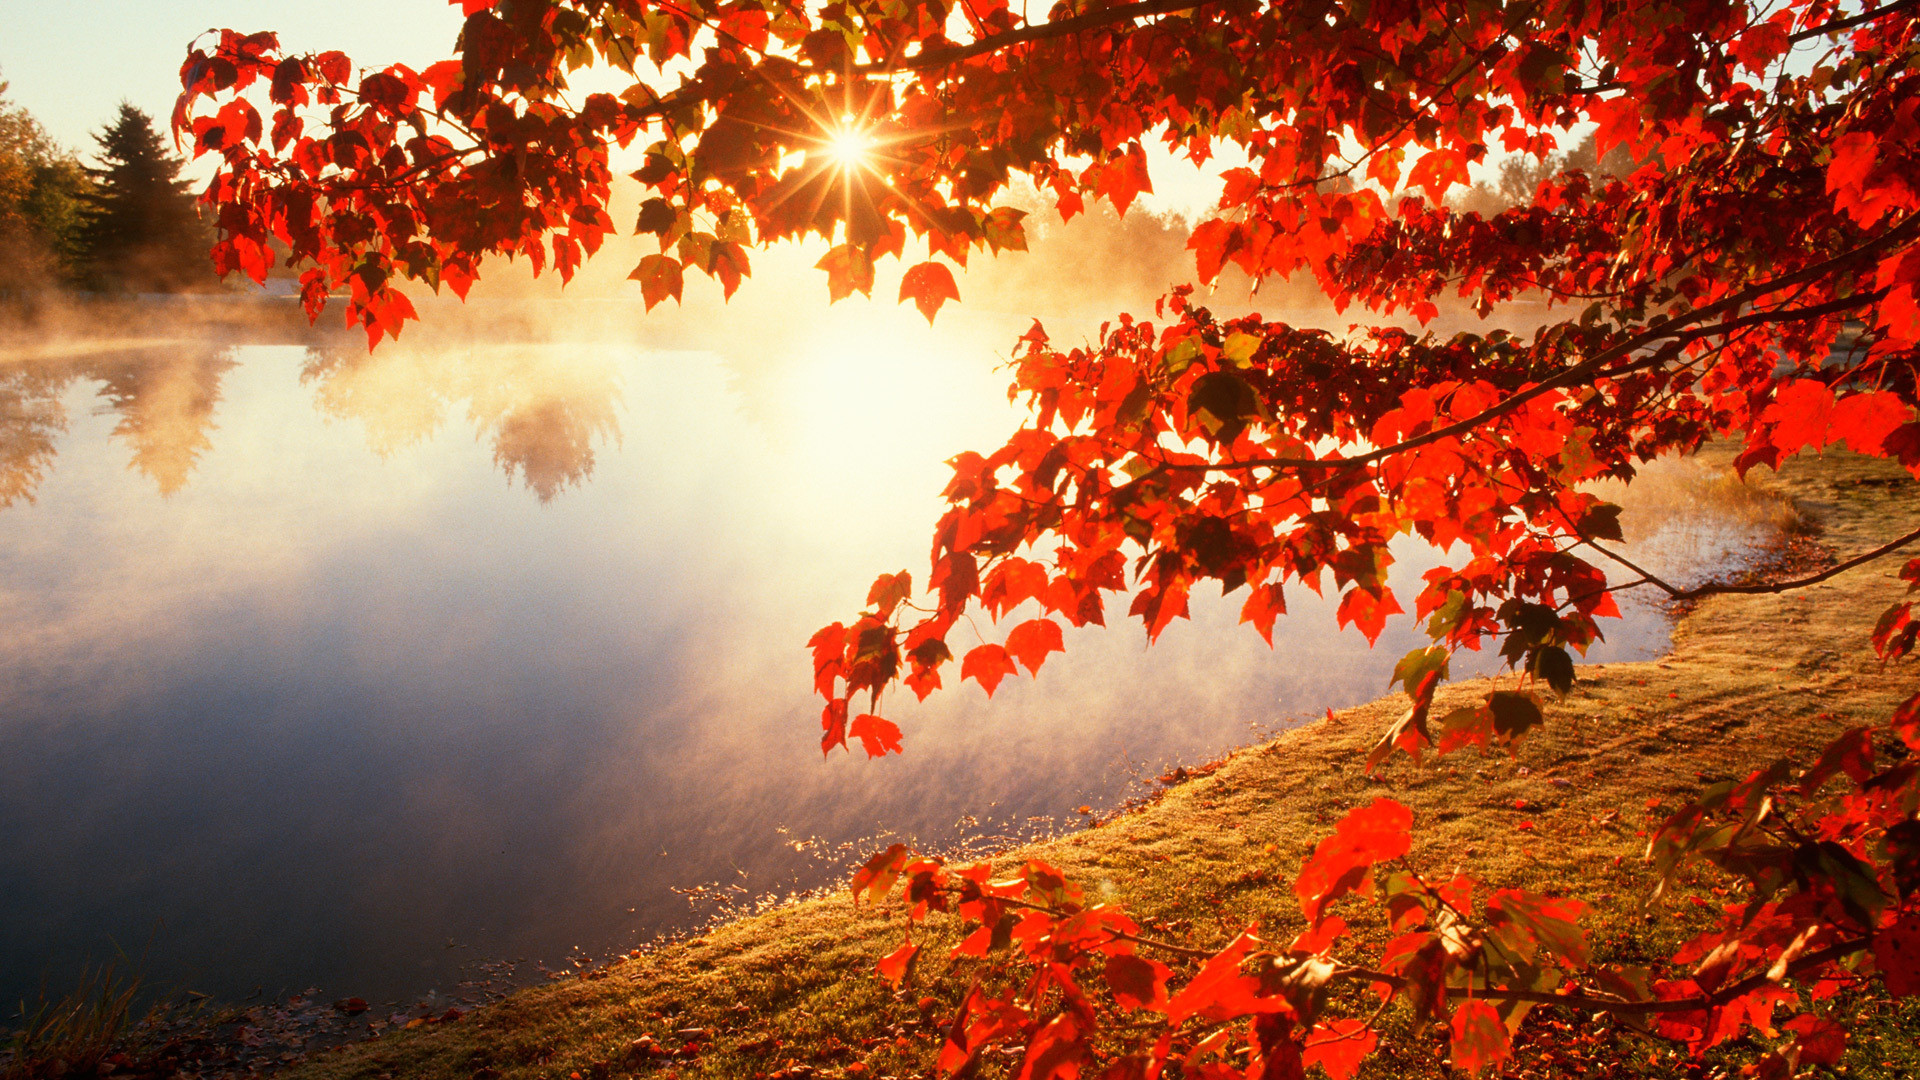 1920x1080 Widescreen Fall Wallpapers Full HD Desktop Wallpapers  px 944.55 KB